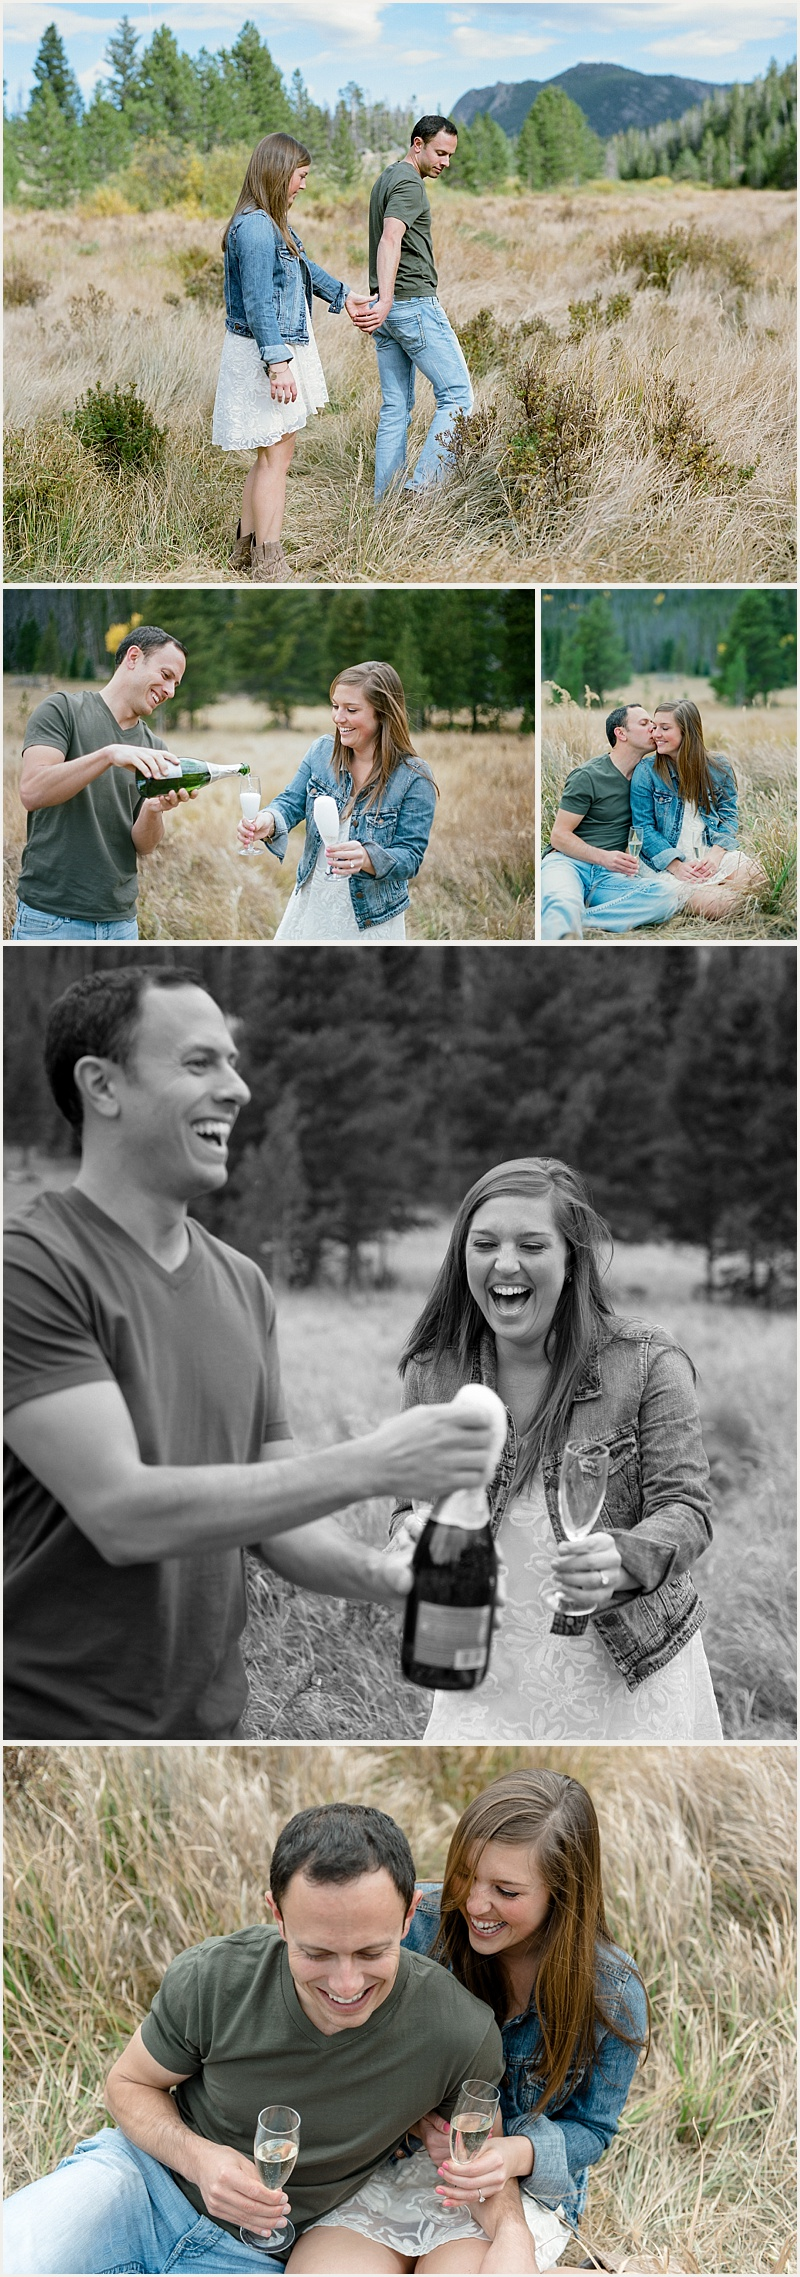 LaurenJonasPhotography-kristen-and-mike-colorado-engagement-photographer1001.jpg